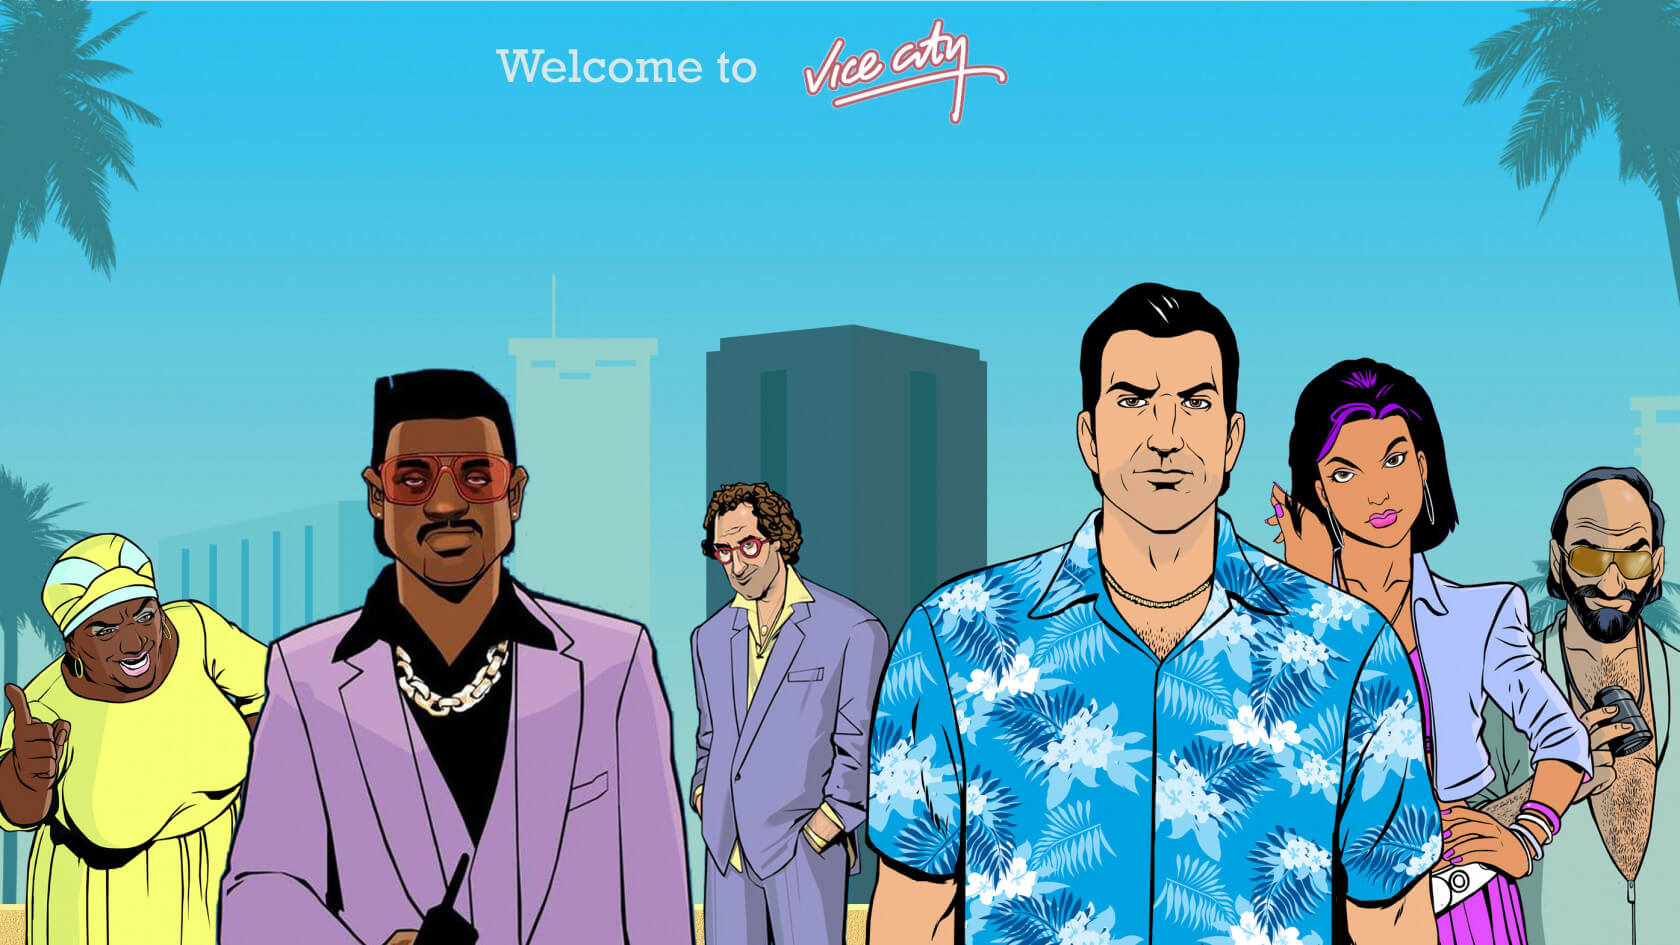 GTA 6 rumored to arrive in 2022, setting will return to Vice City